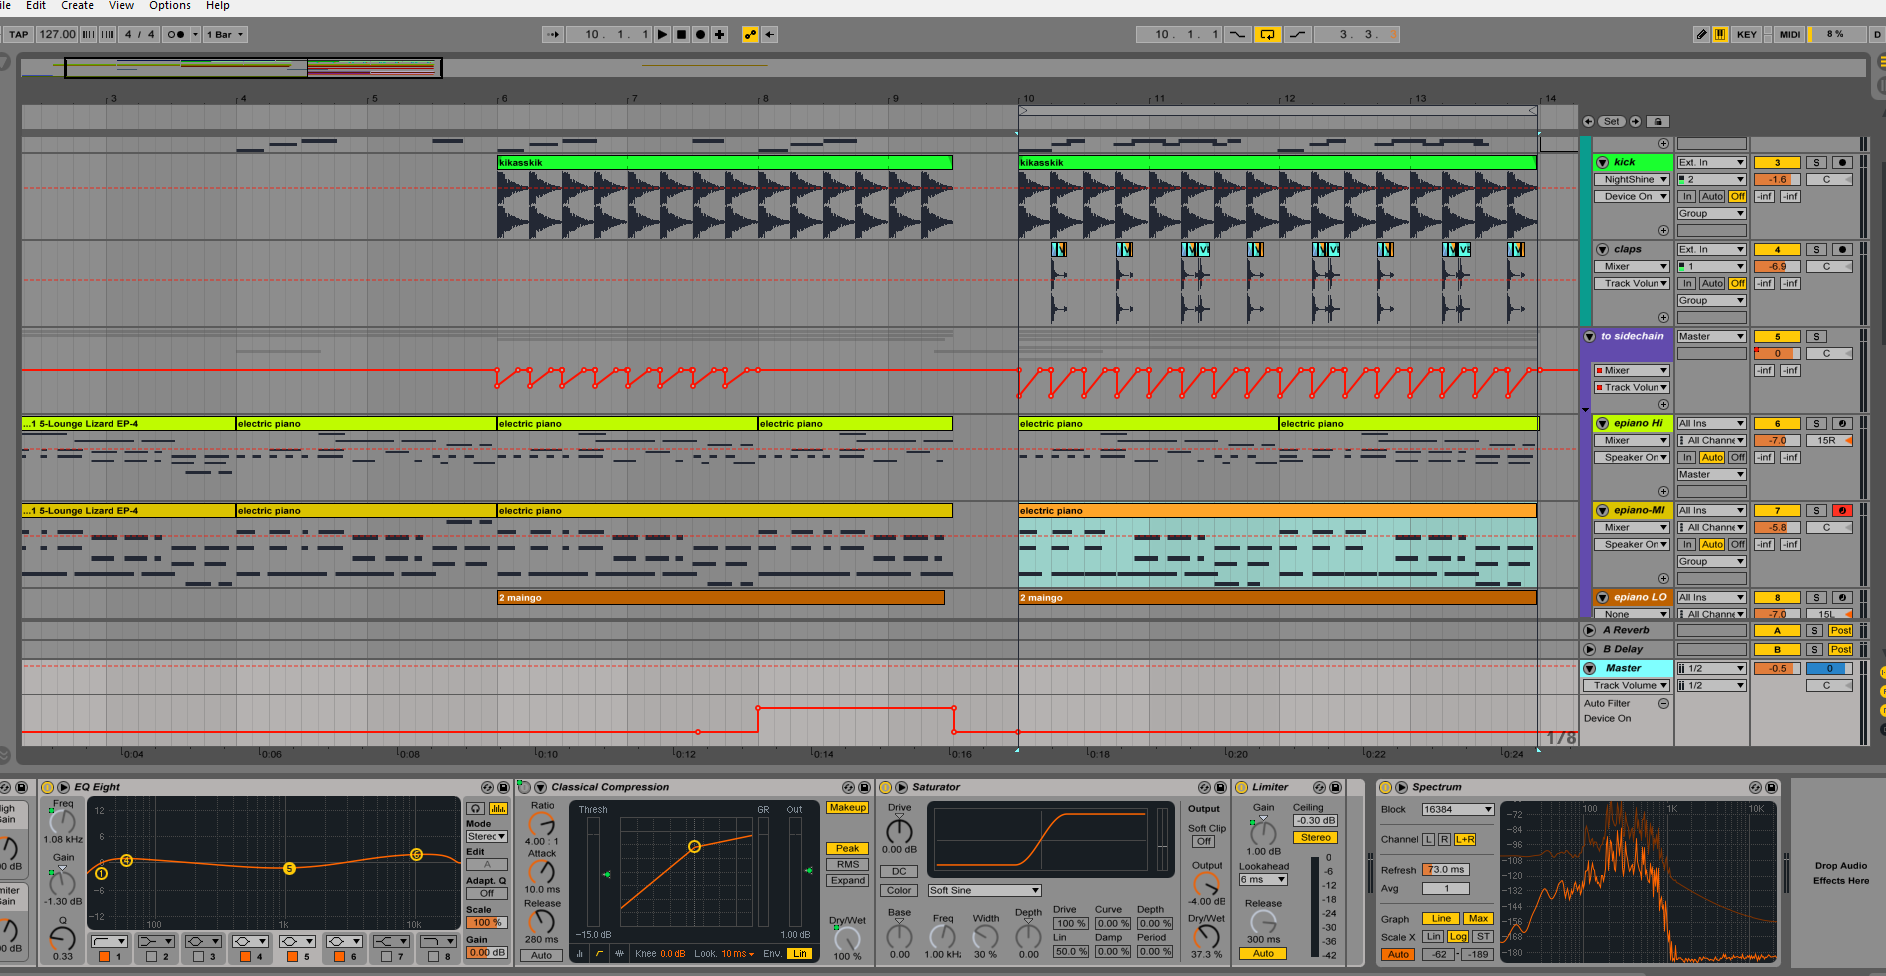 This is a pic of the layout and Master Chain.